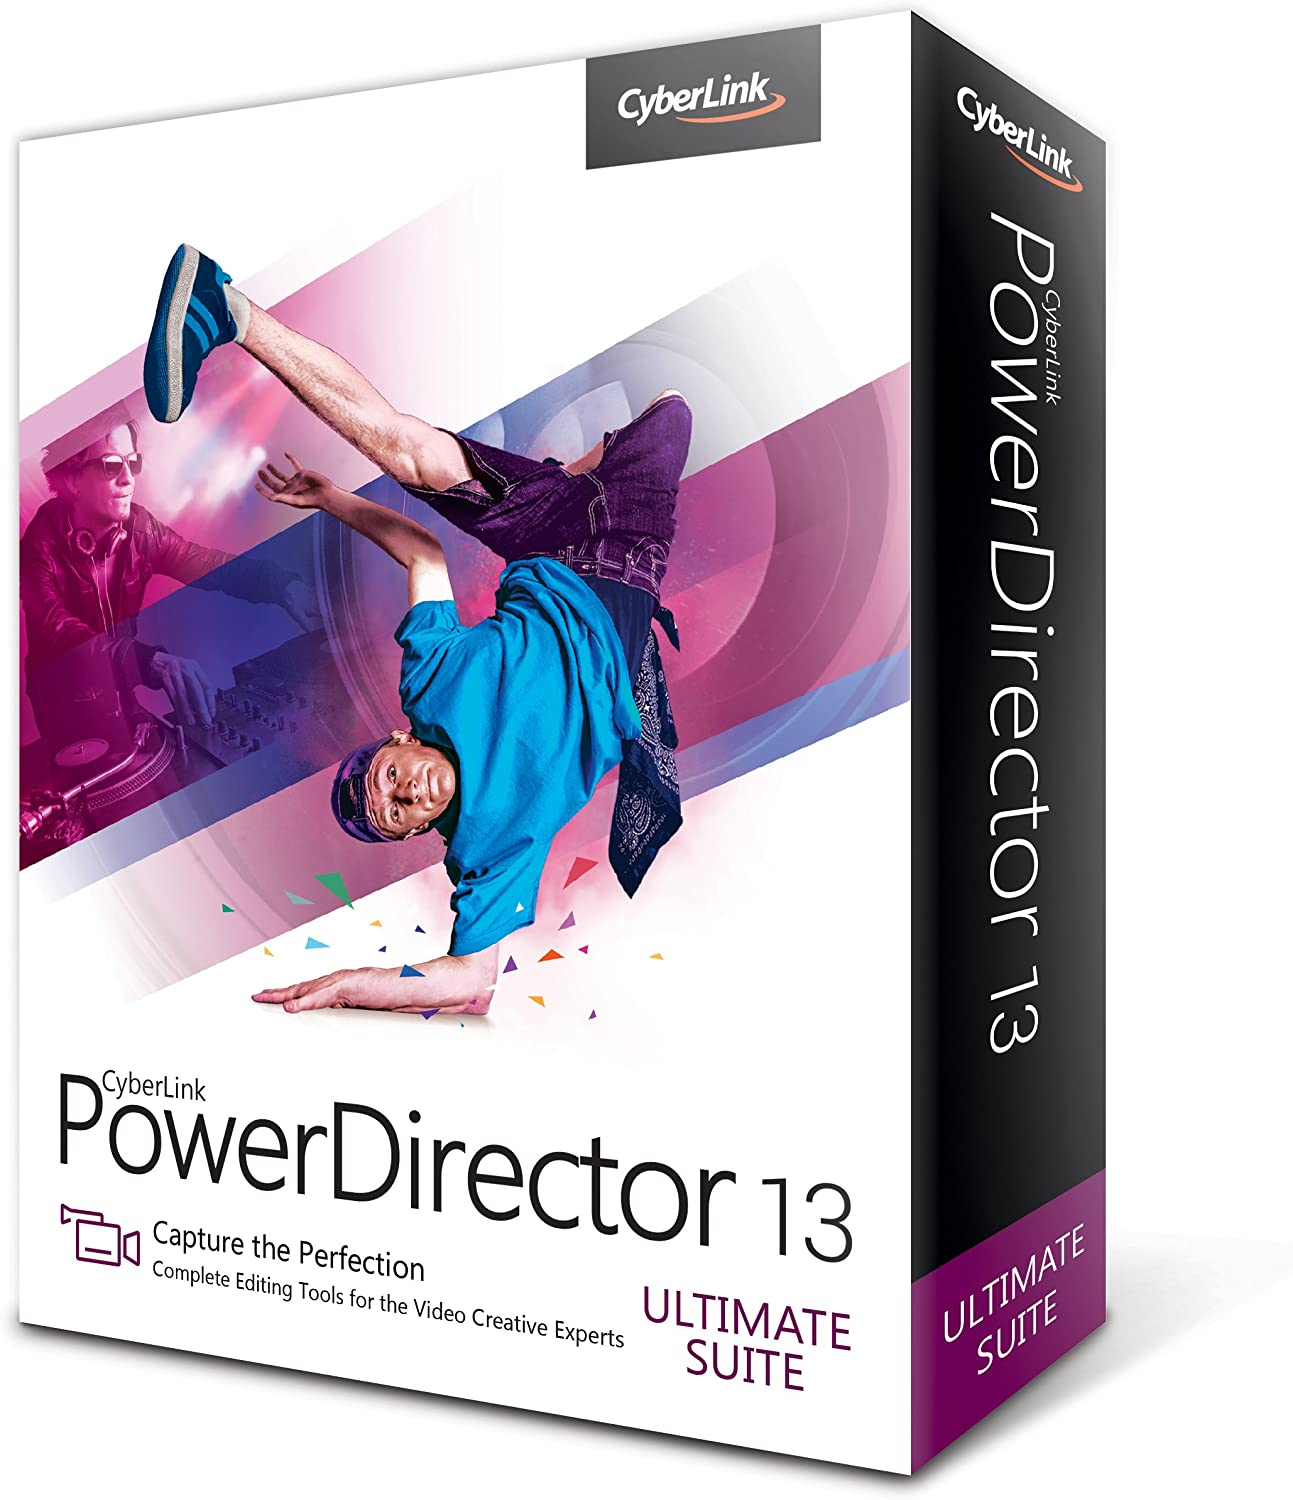 Cyberlink Powerdirector 12 Crack Only Download